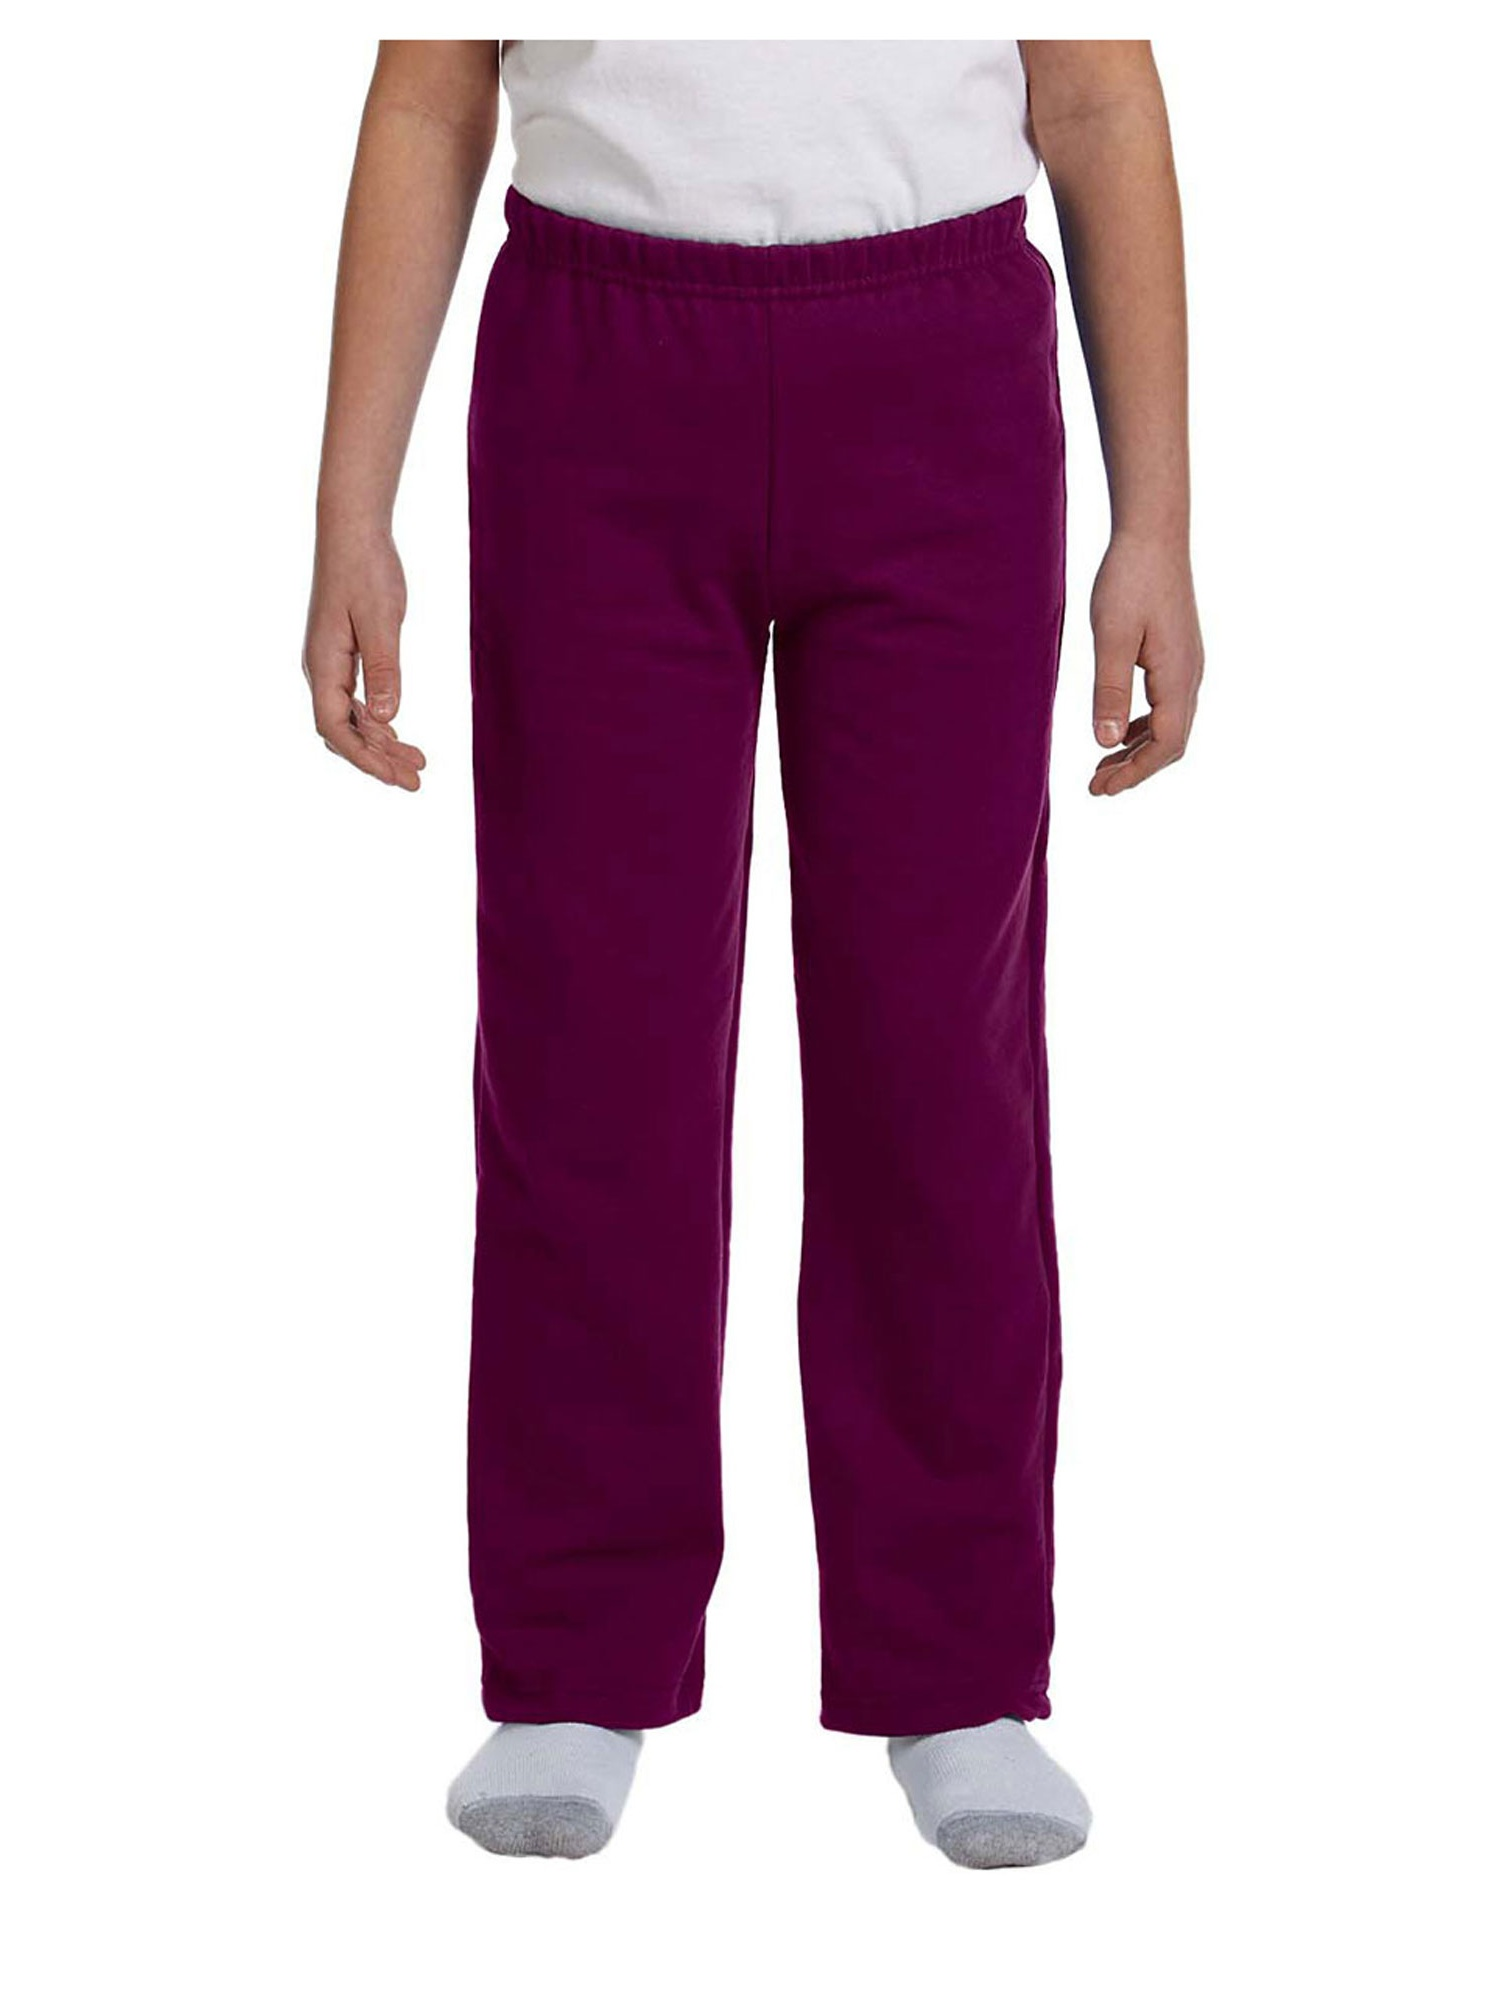 Gildan Big Boy's Missy Fit Air Jet Yarn Fleece Sweatpant, Style G18400B